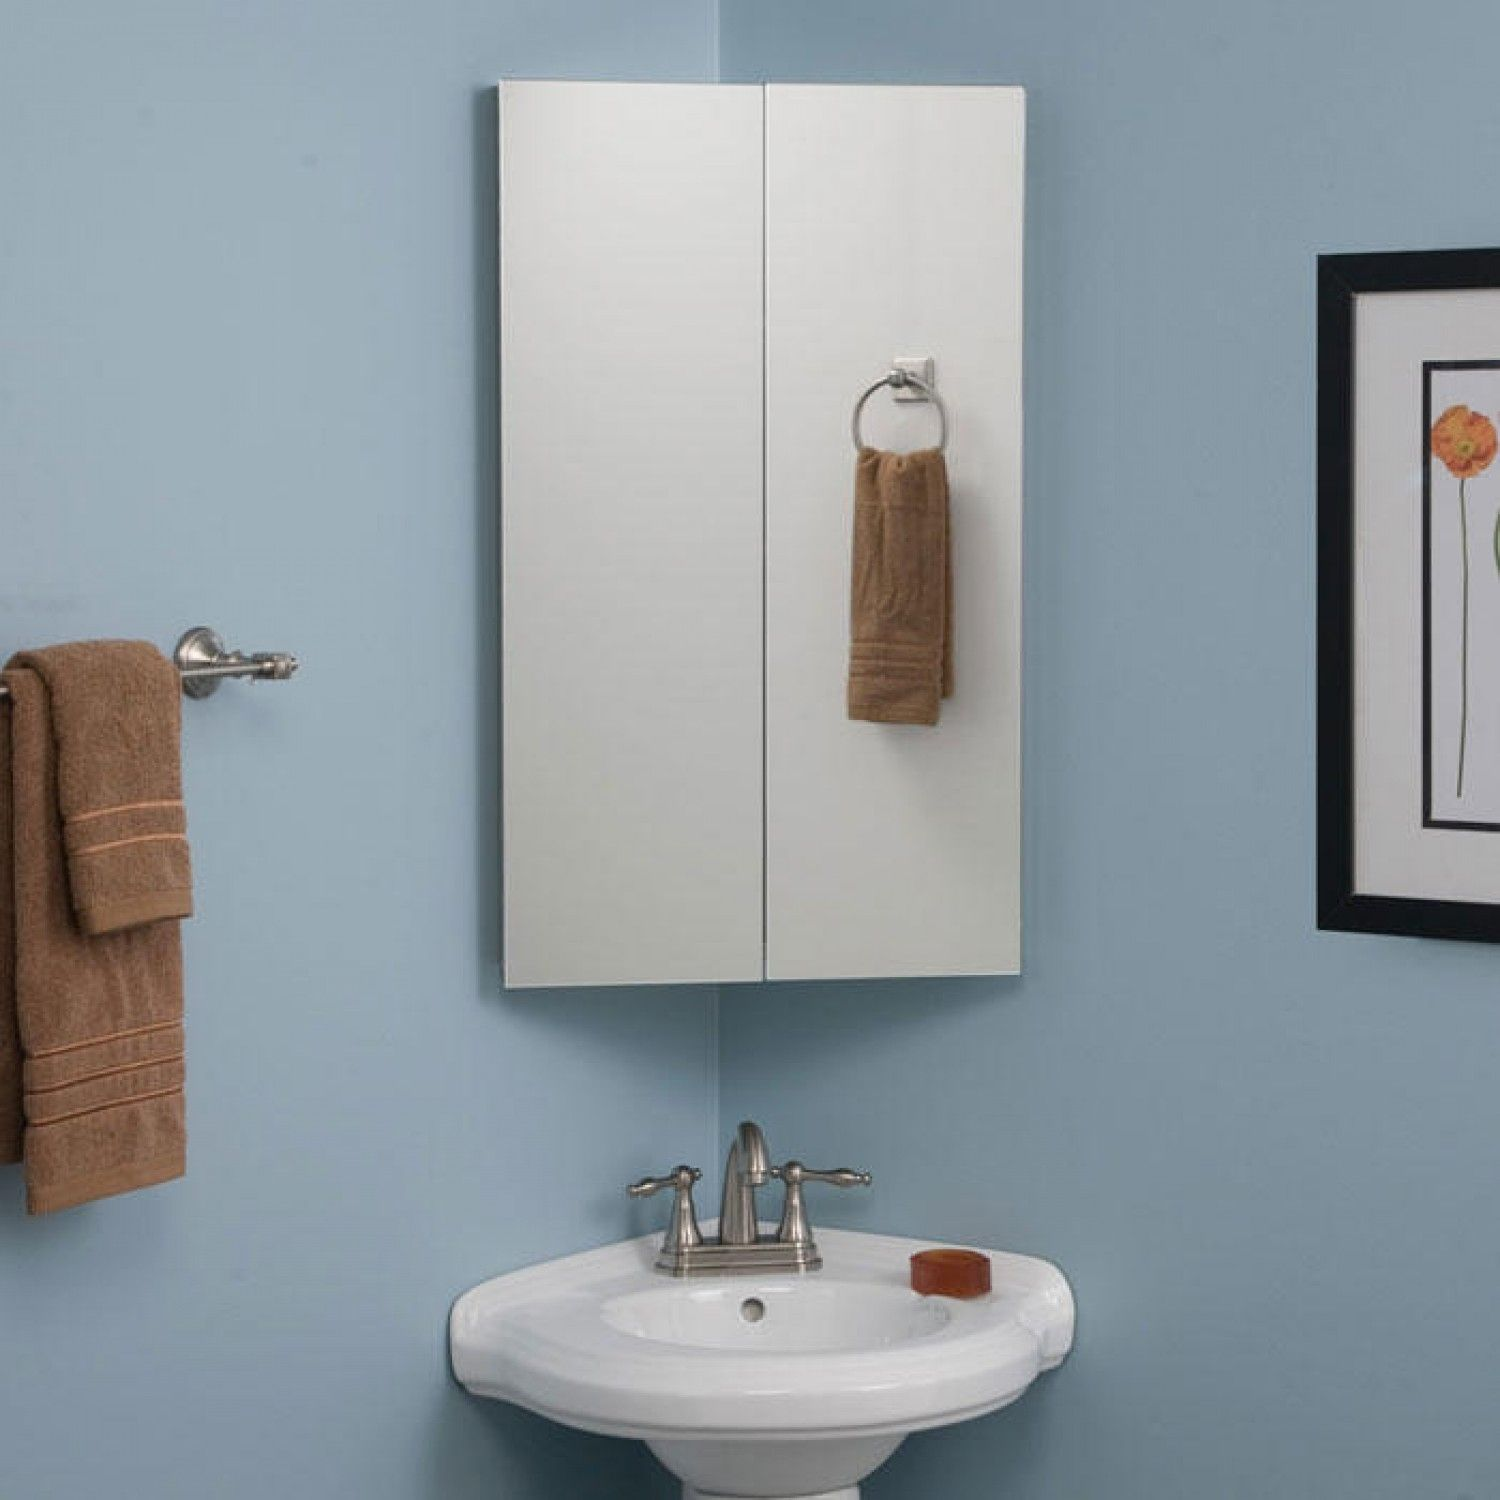 Tall Corner Bathroom Cabinets Stainless Steel | http://betdaffaires ...